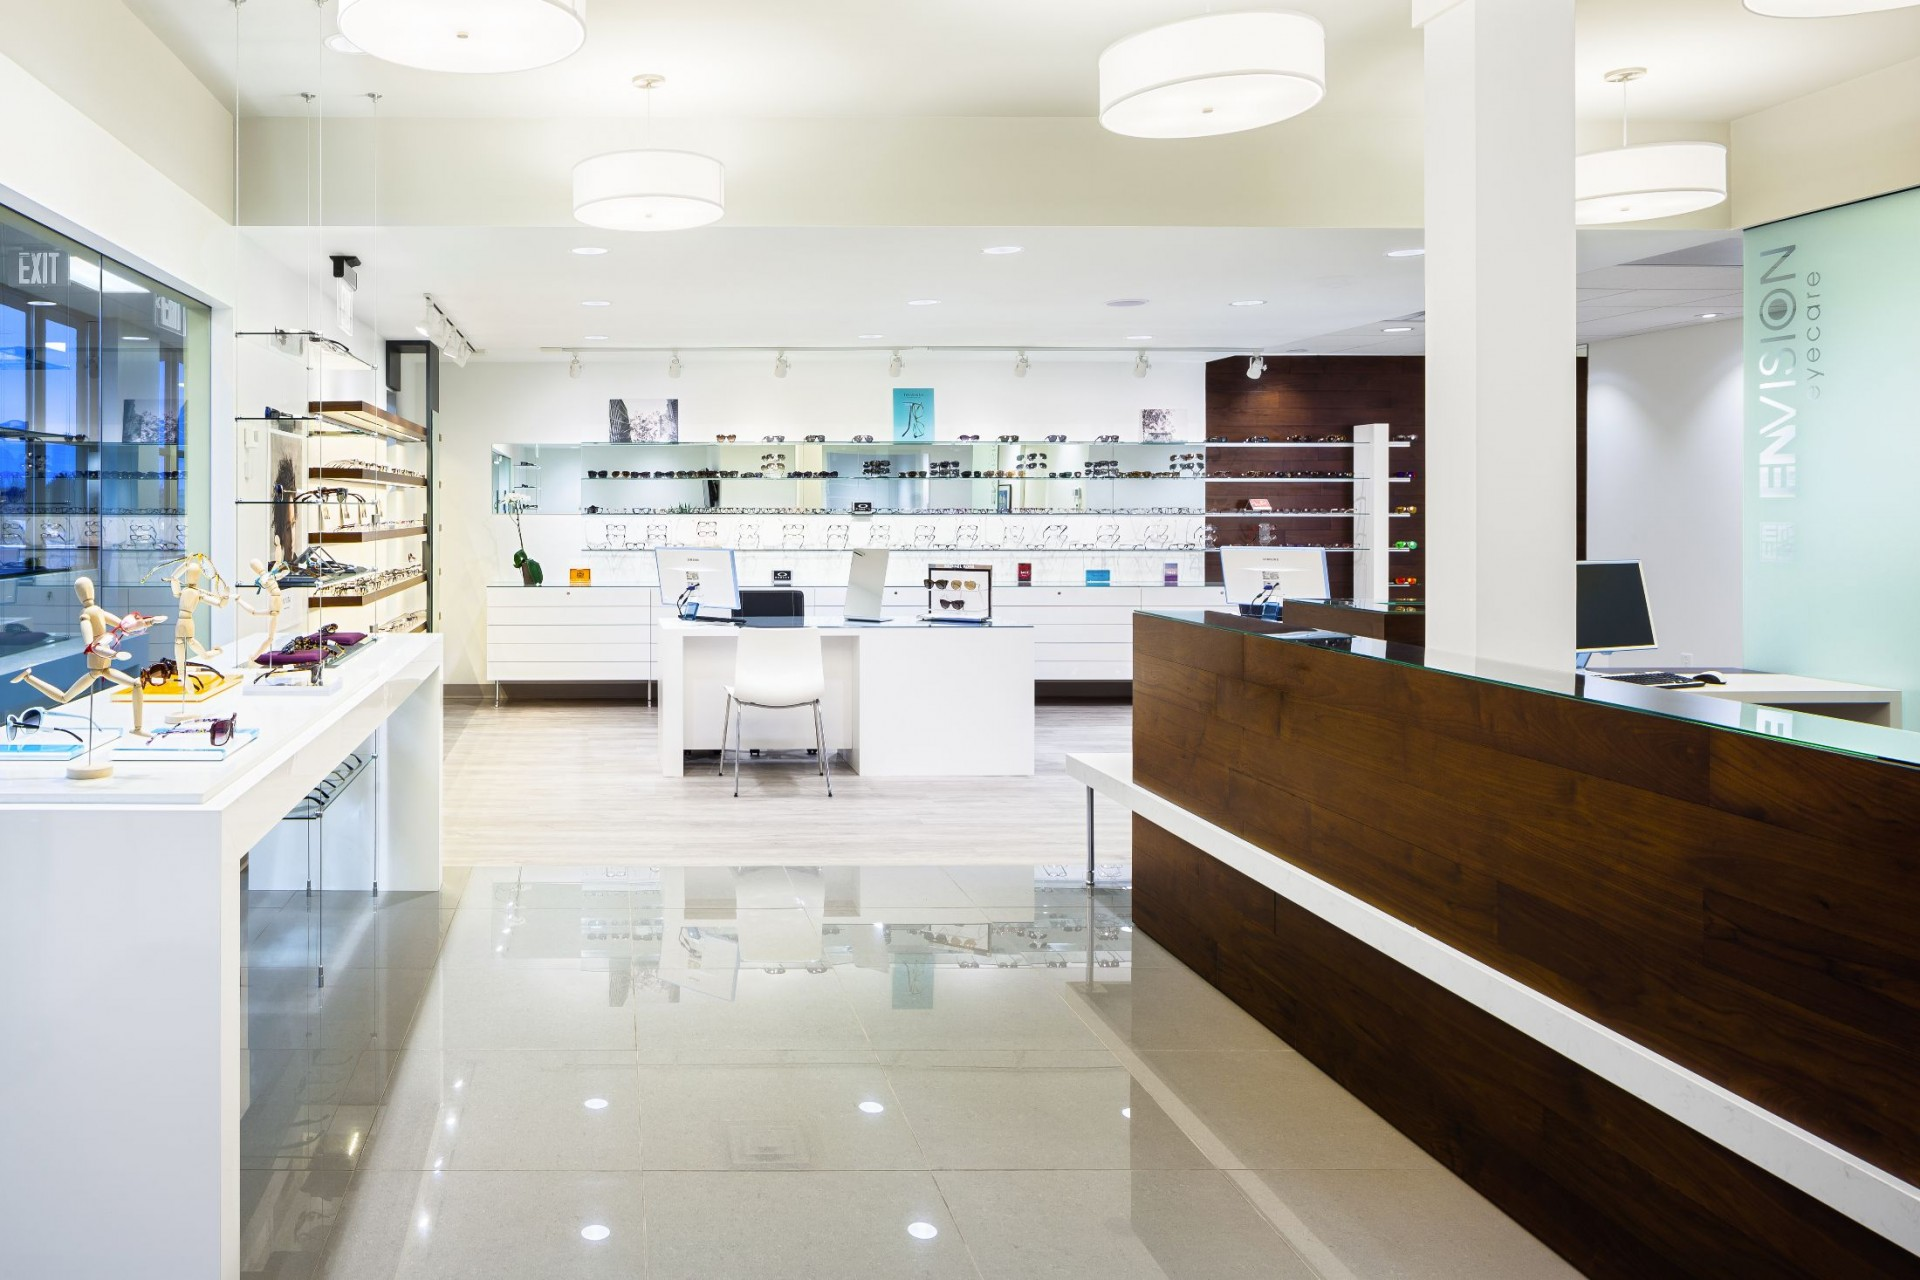 envision eyecare marks joearchitect s first venture in optical